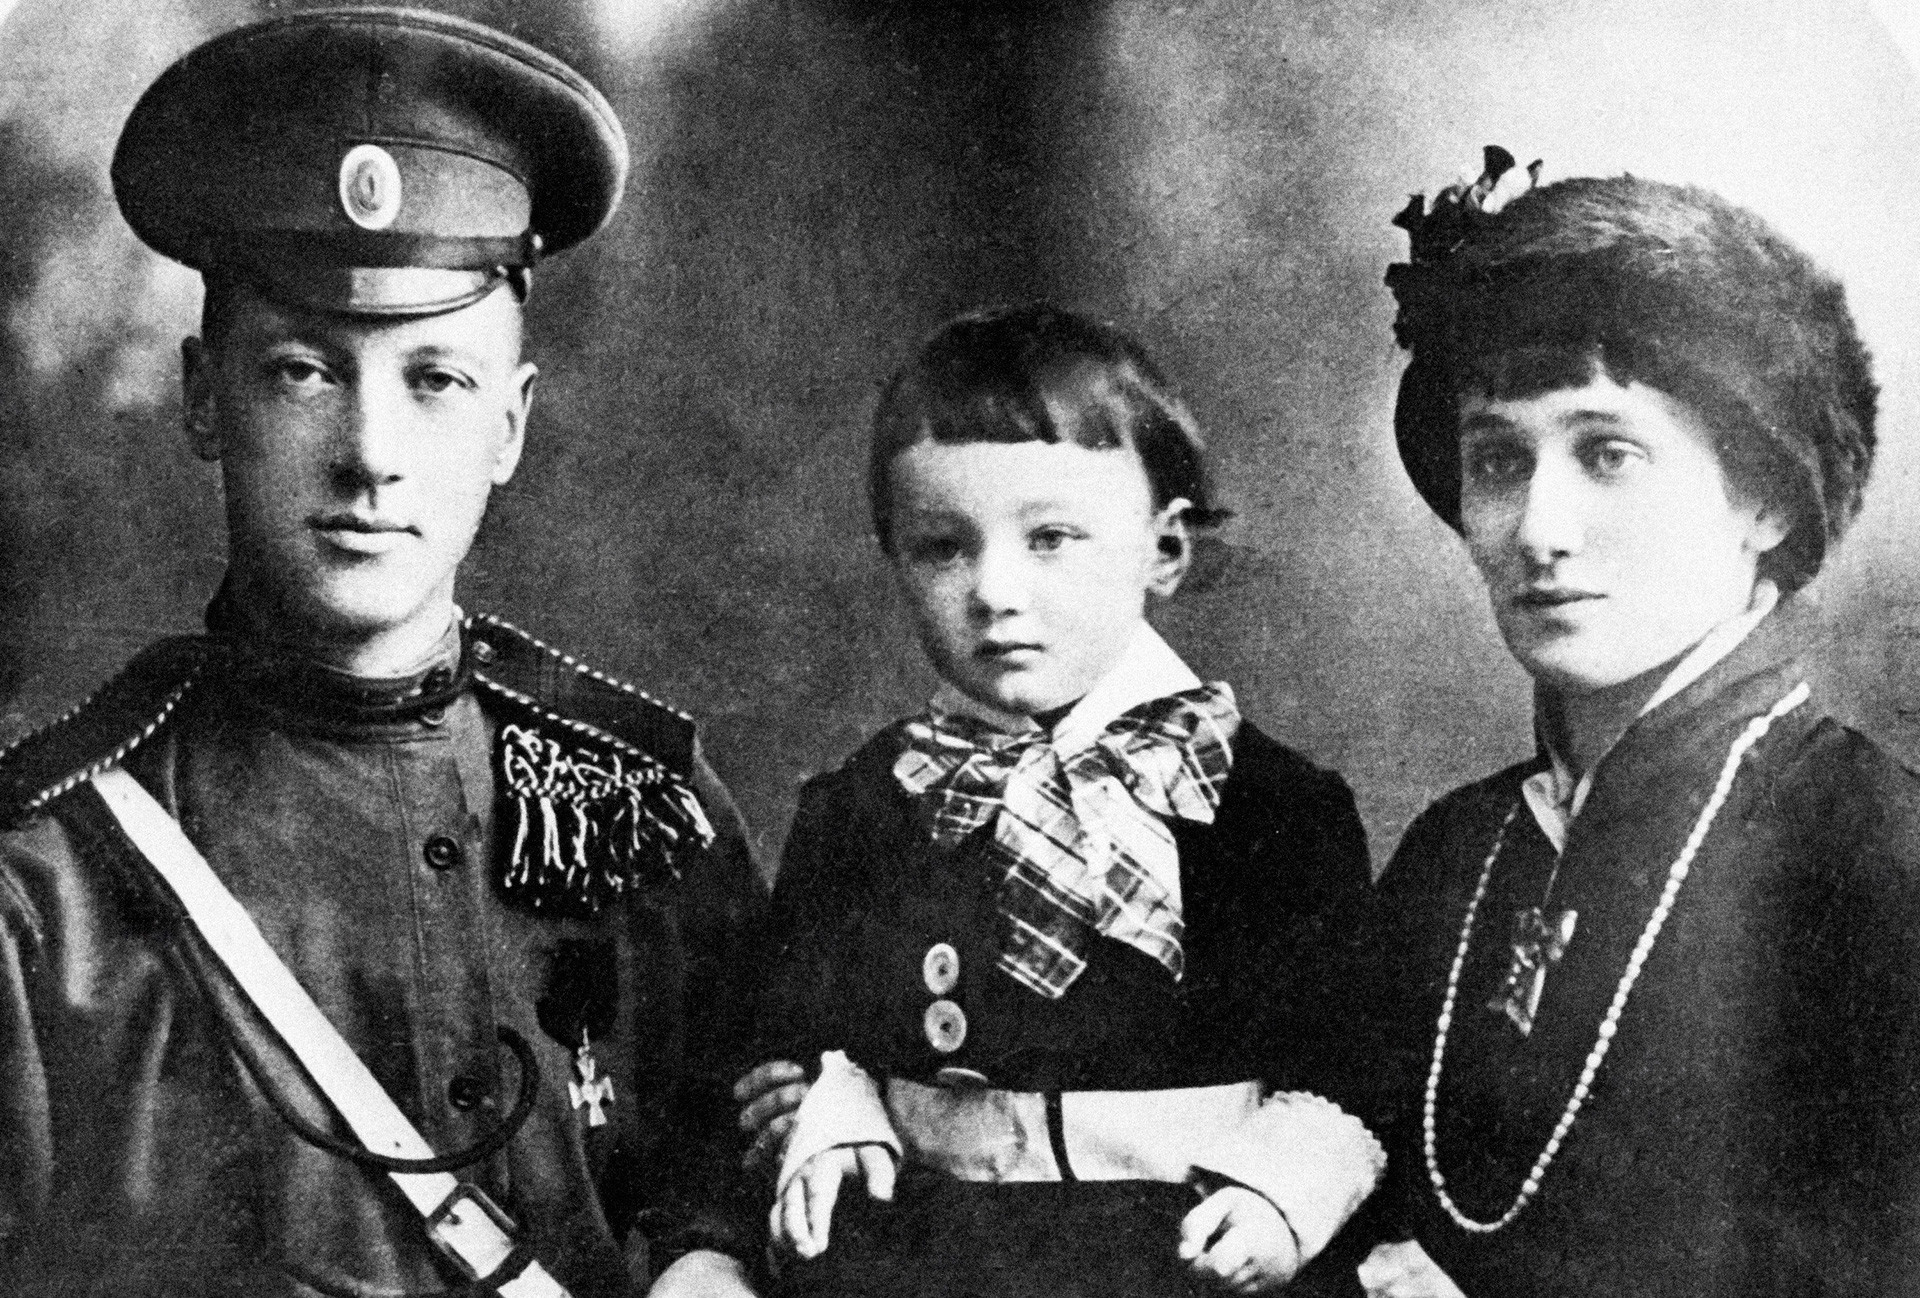 Poets Nikolai Gumilev (left) and Anna Akhmatova (right) with son Lev.